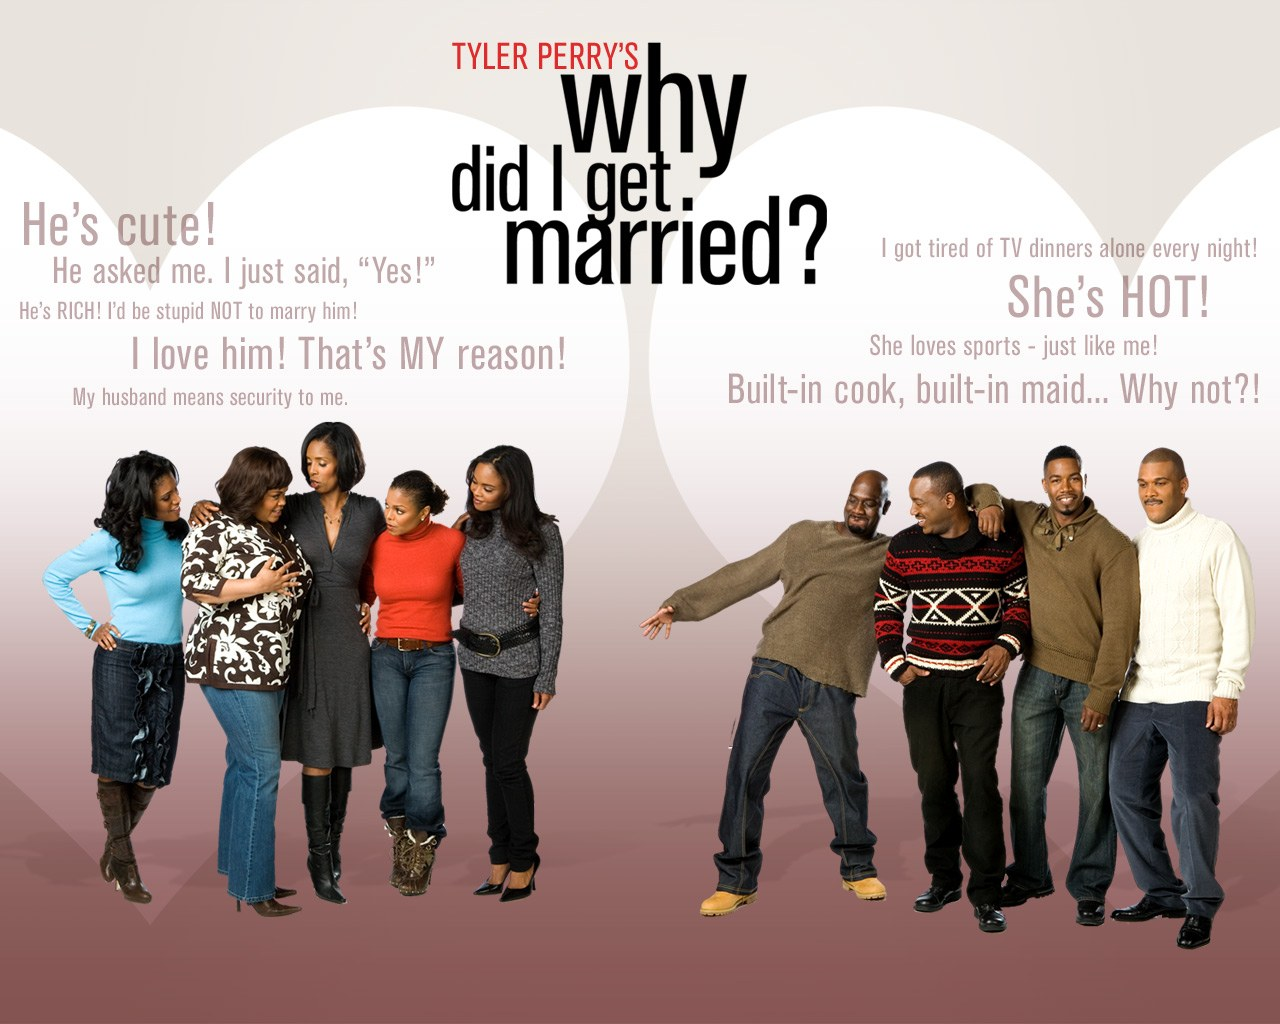 why did i get married too Official trailer for the upcoming feature film tyler perry's why did i get married too in hd (resized to 16:9).